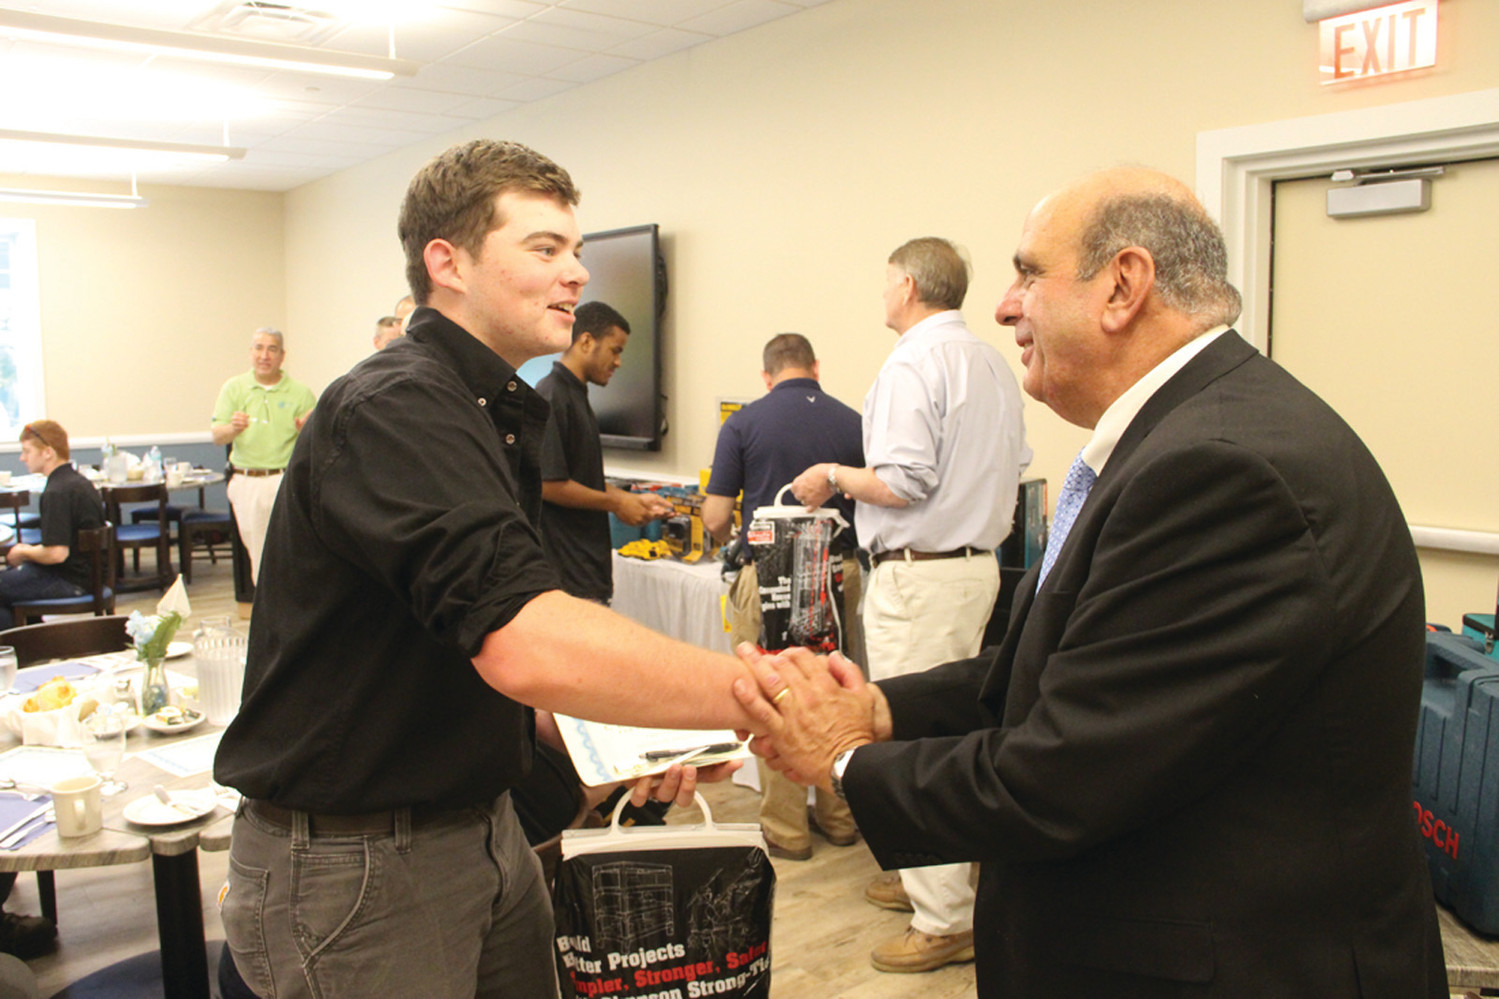 IN THE LINEUP: Acting Mayor Solomon joined representatives from the Rhode Island Building Officials Association in congratulating scholarship recipients. Here he shakes the hand of Andrew Fredericks.